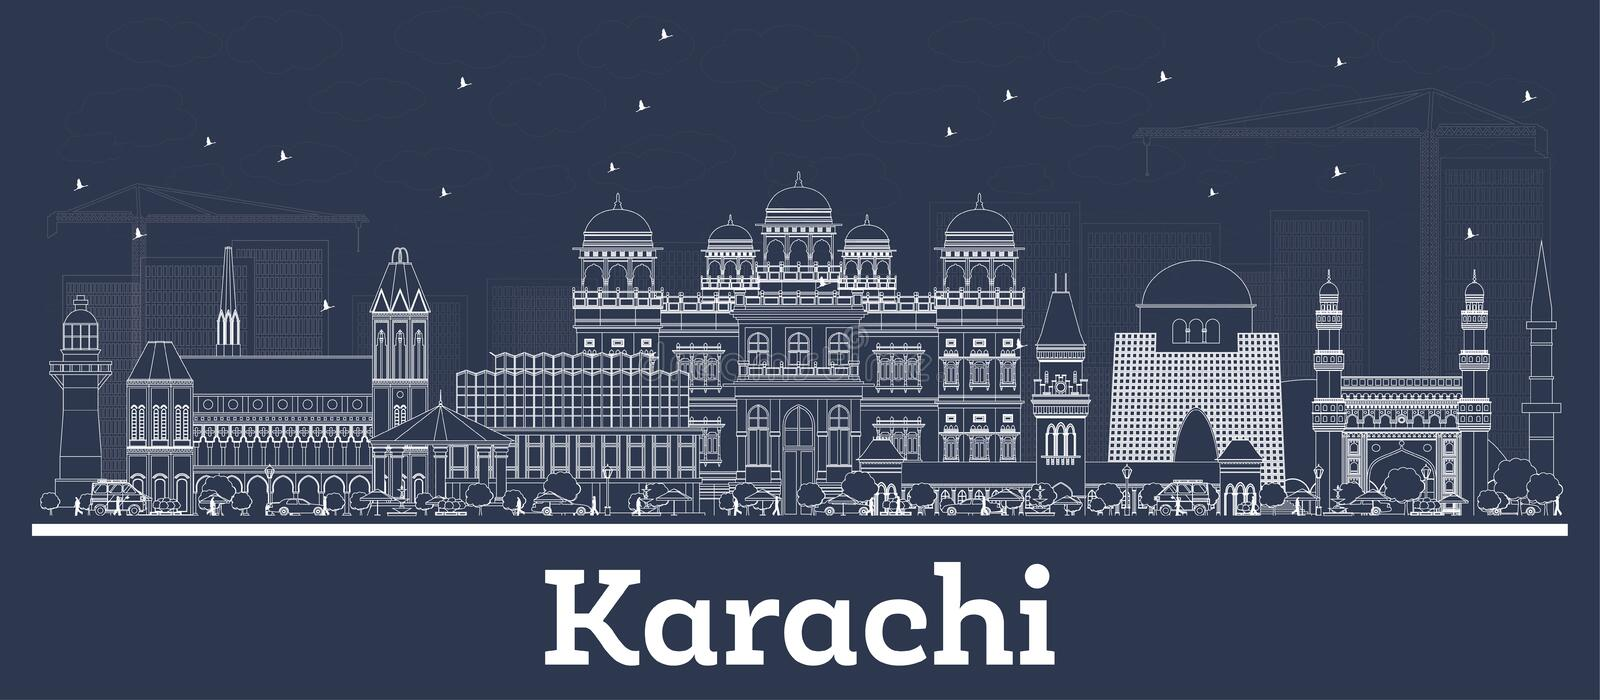 Outline Karachi Pakistan City Skyline with White Buildings. Vector Illustration. Business Travel and Concept with Historic Architecture. Karachi Cityscape with royalty free illustration